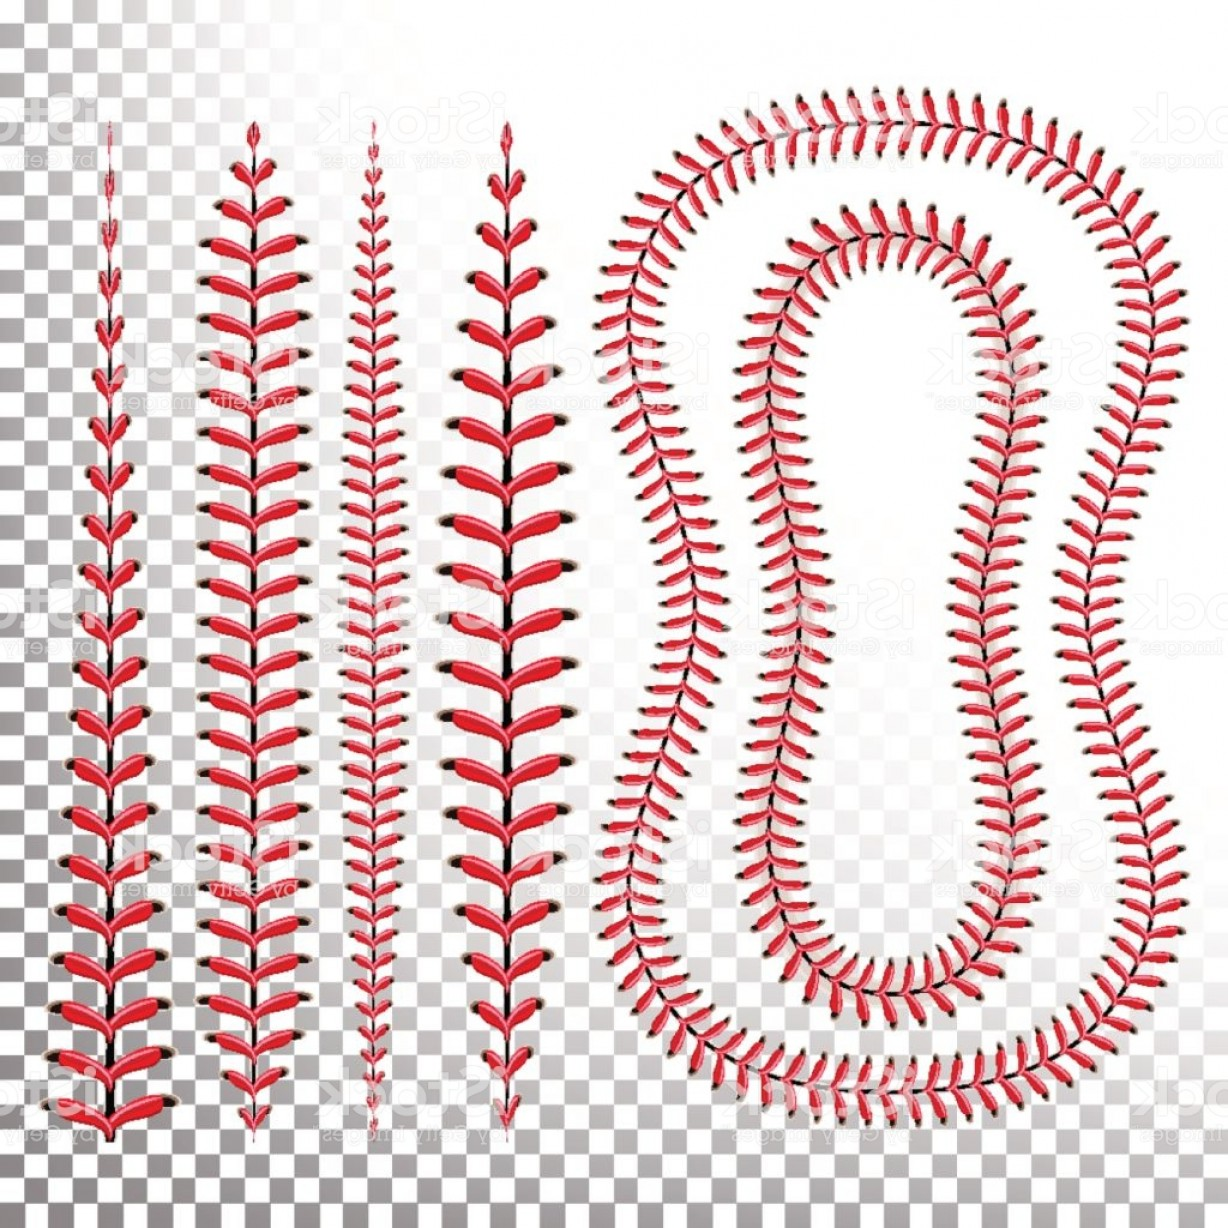 Laces Basball Vector: Baseball Stitches Vector Lace From A Baseball Isolated On Transparent Sports Ball Gm